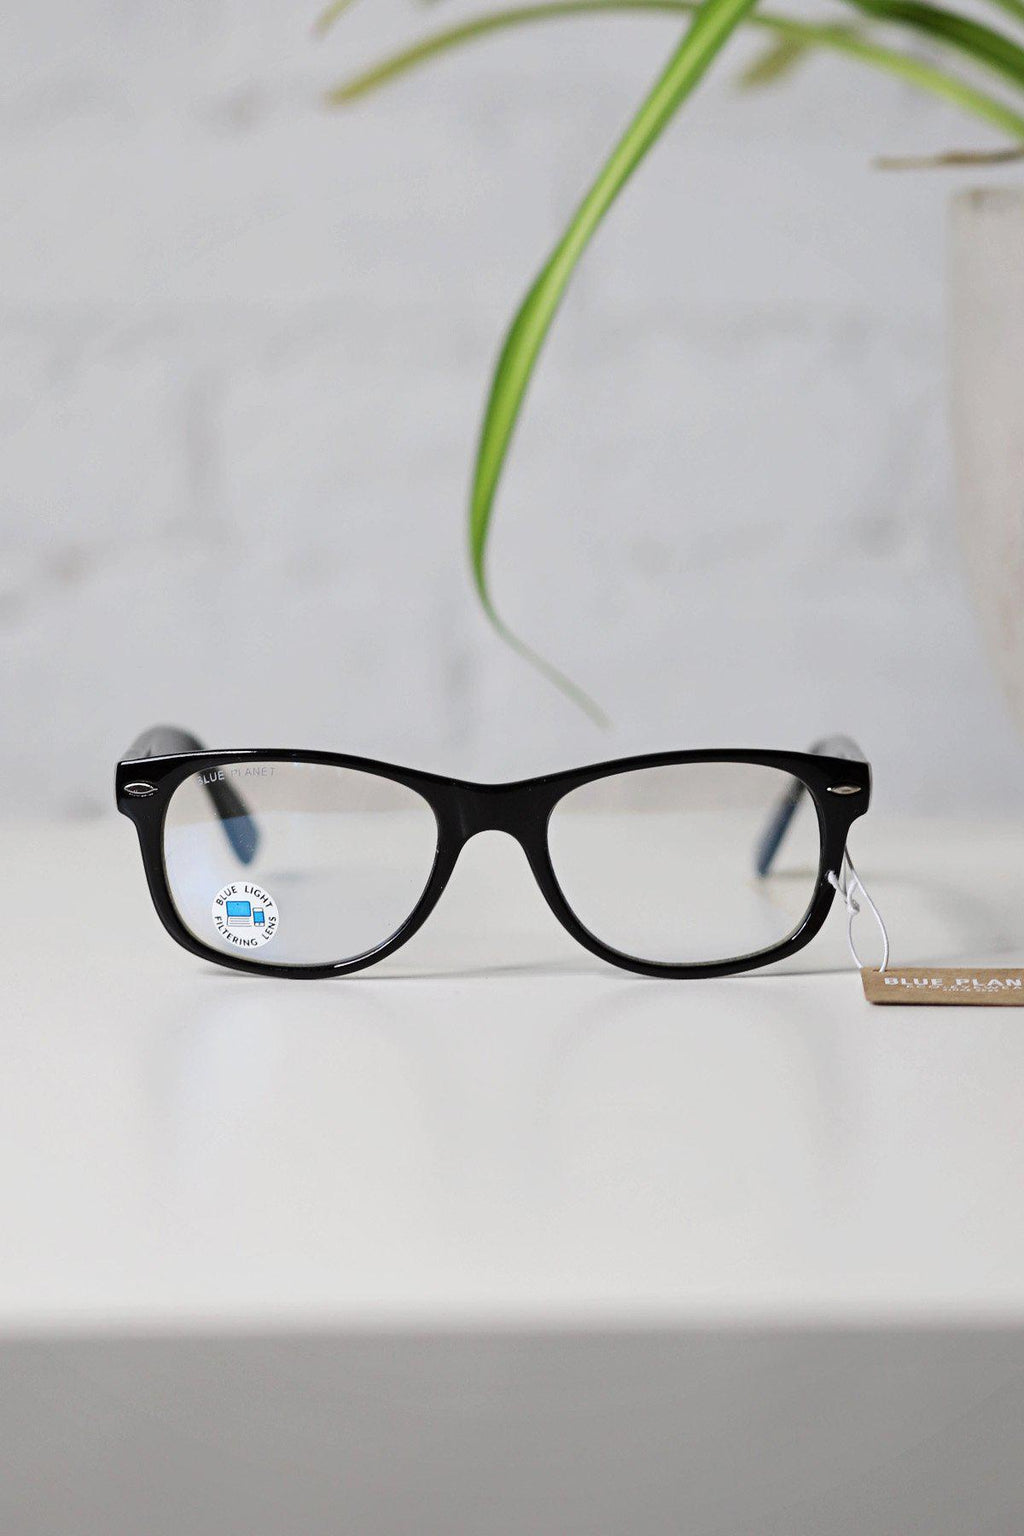 Classic Black Onyx / Unisex Blue Light Glasses - Gallery 512 Boutique